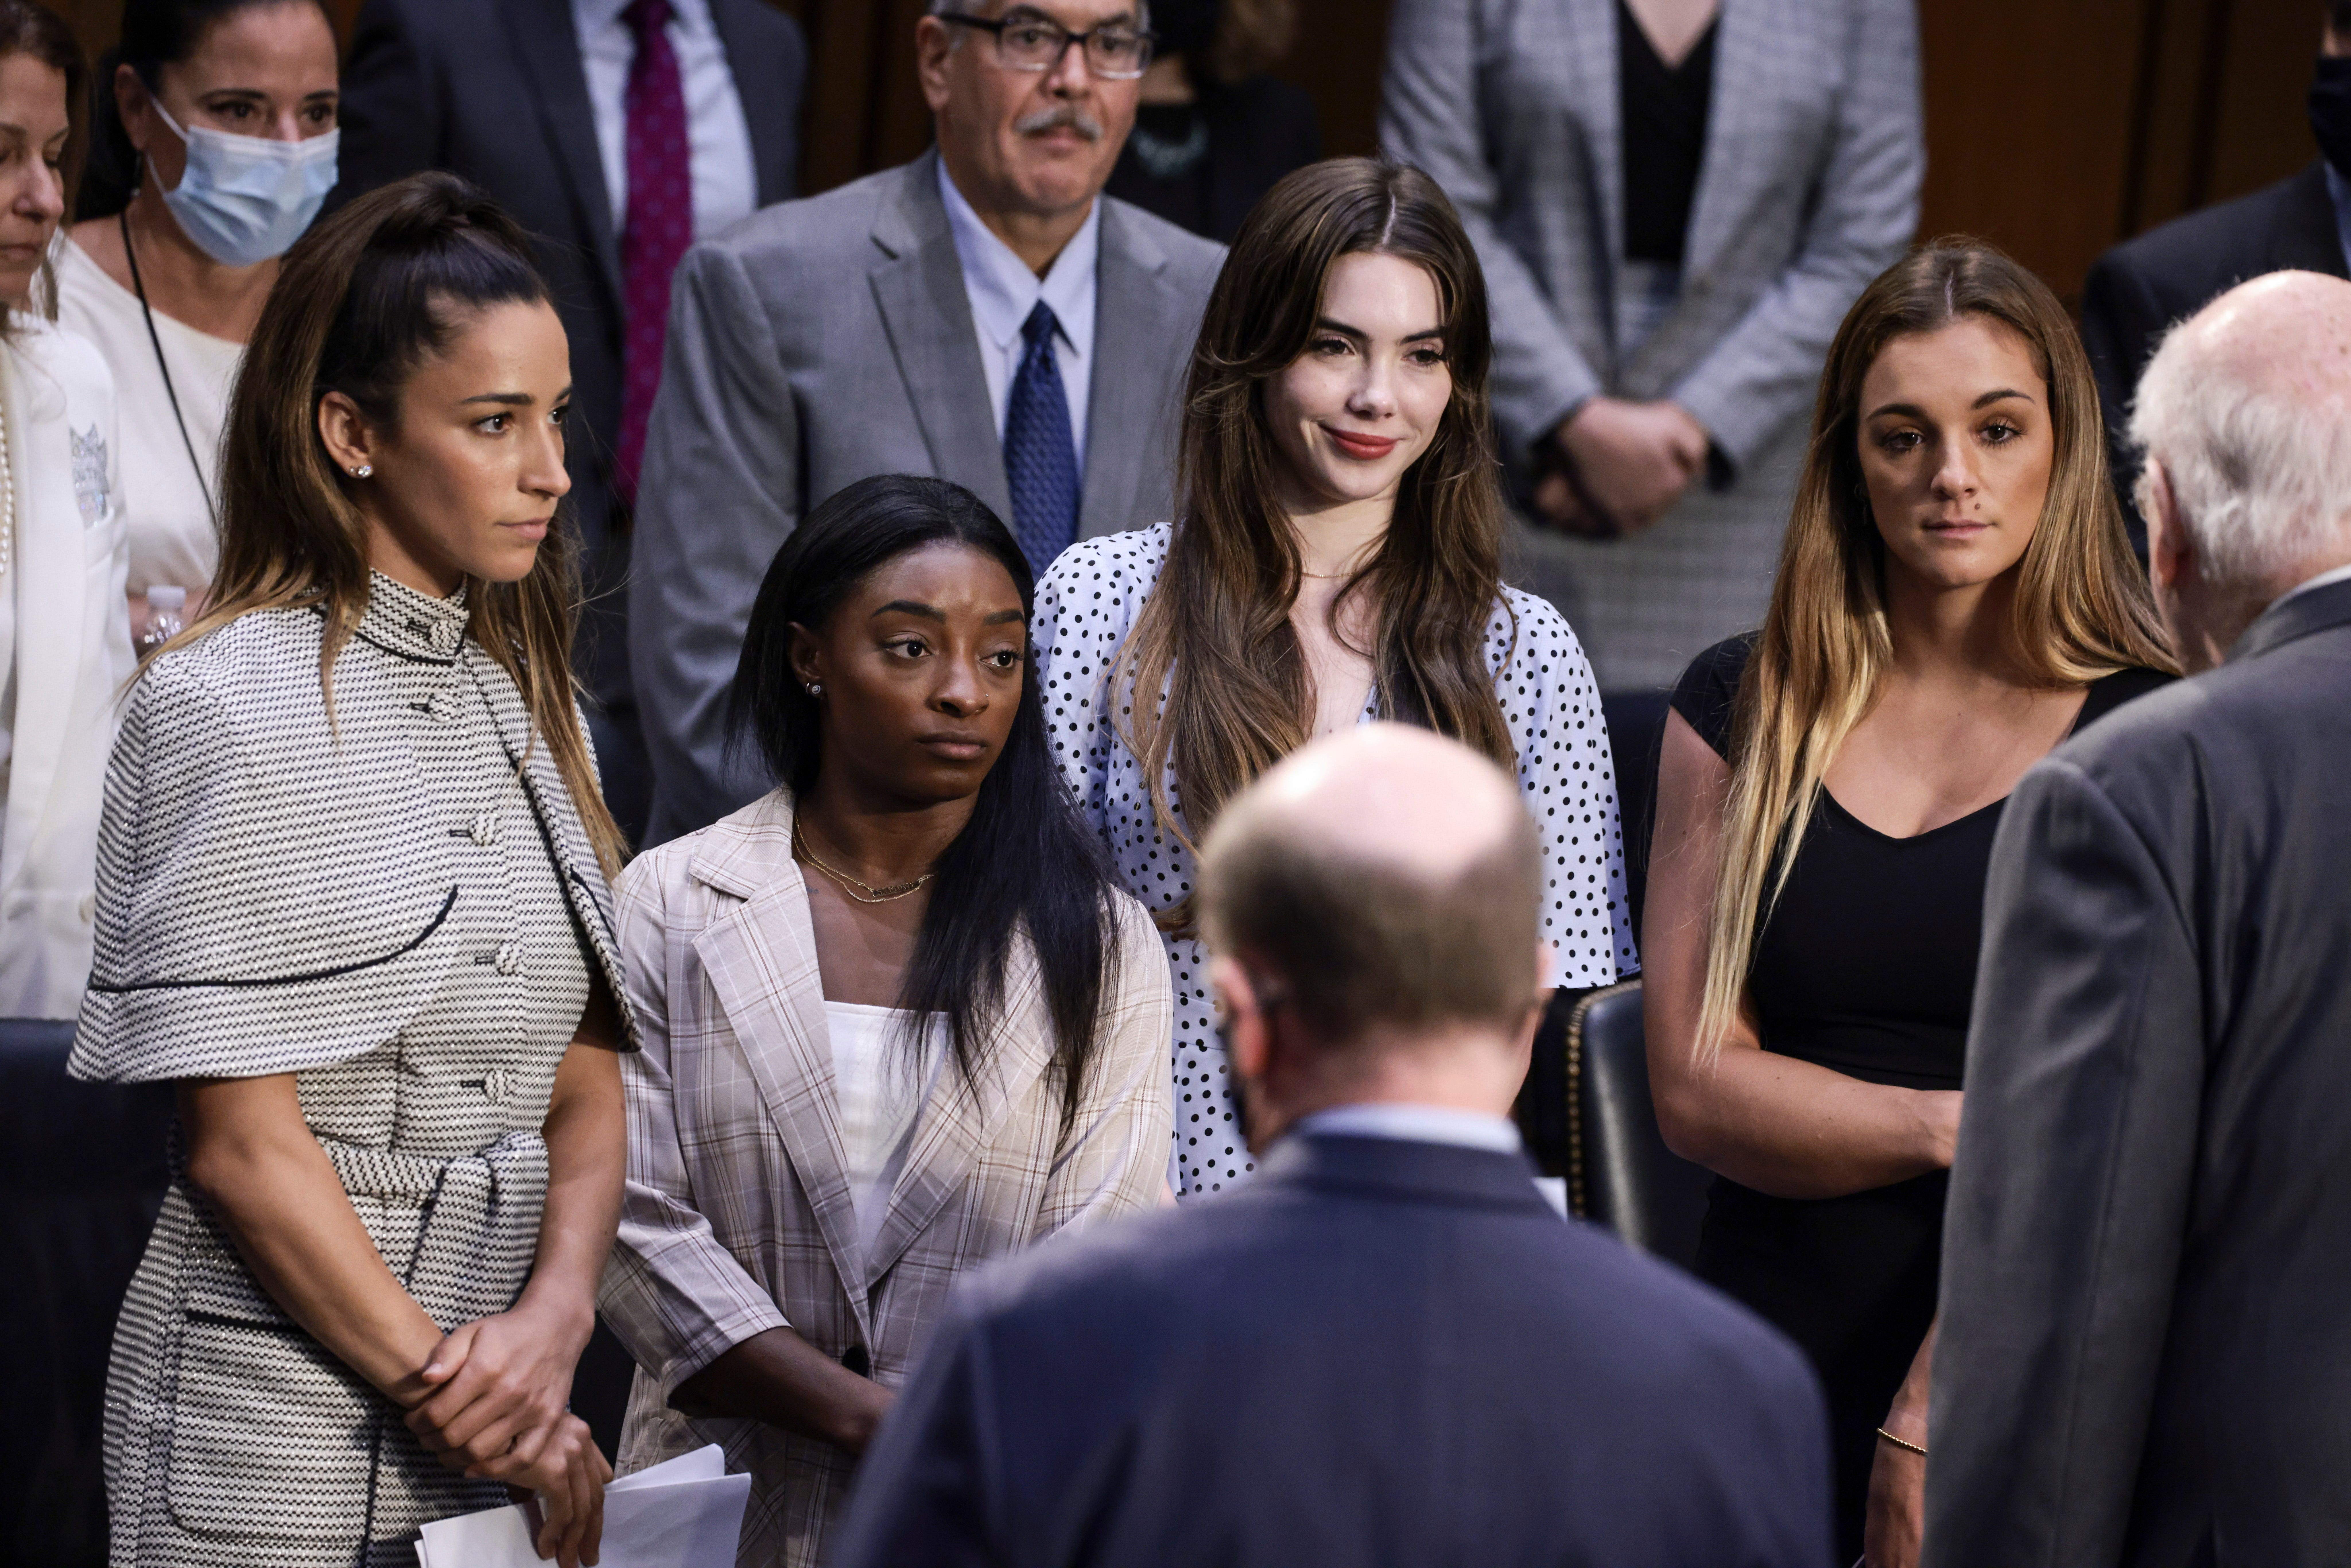 Opinion: Gymnasts bare their souls in describing Larry Nassar abuse, but are lawmakers listening?